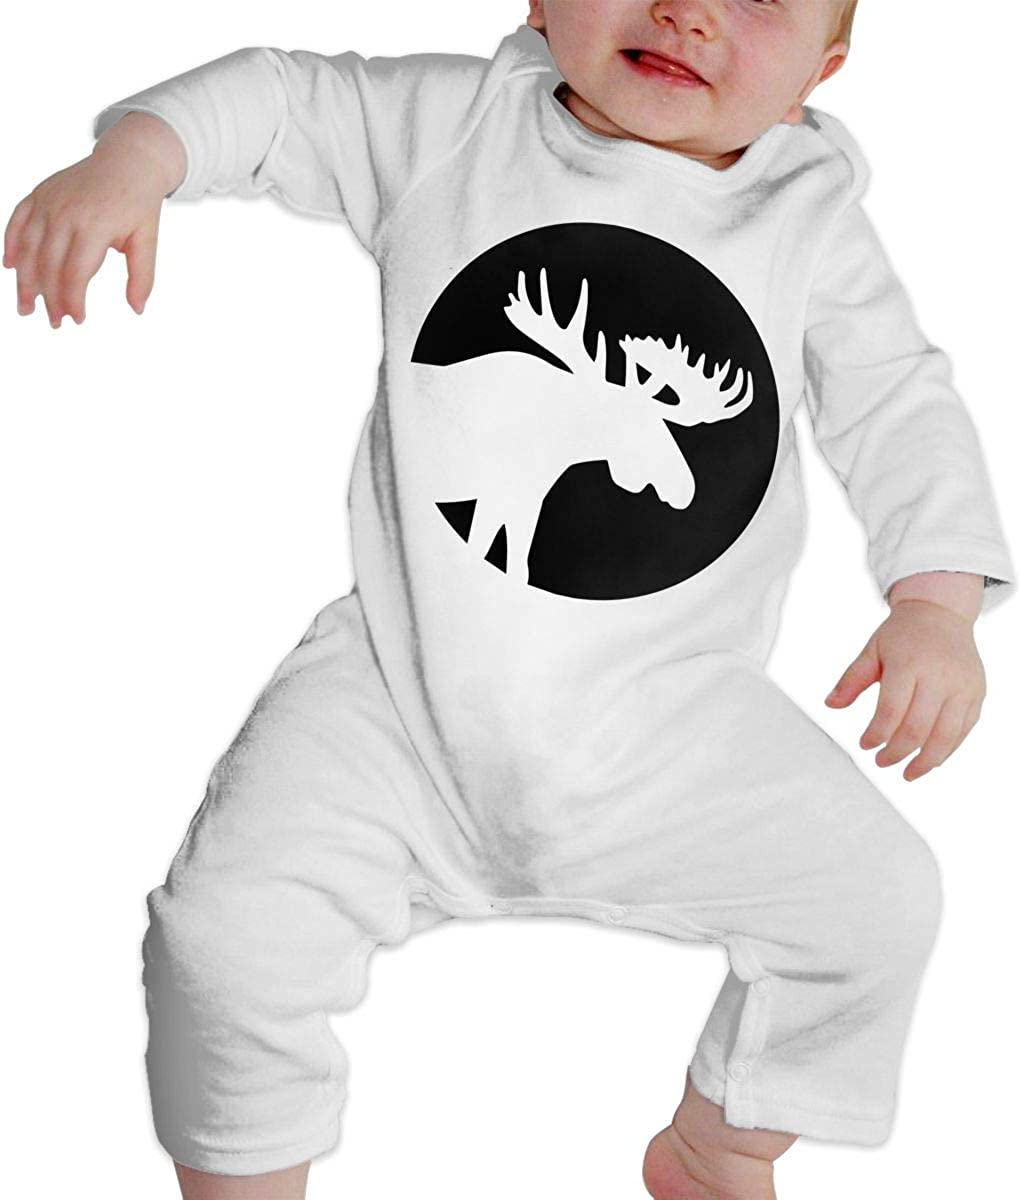 Moose Silhouette Moon Printed Newborn Baby One-Piece Suit Long Sleeve Rompers White